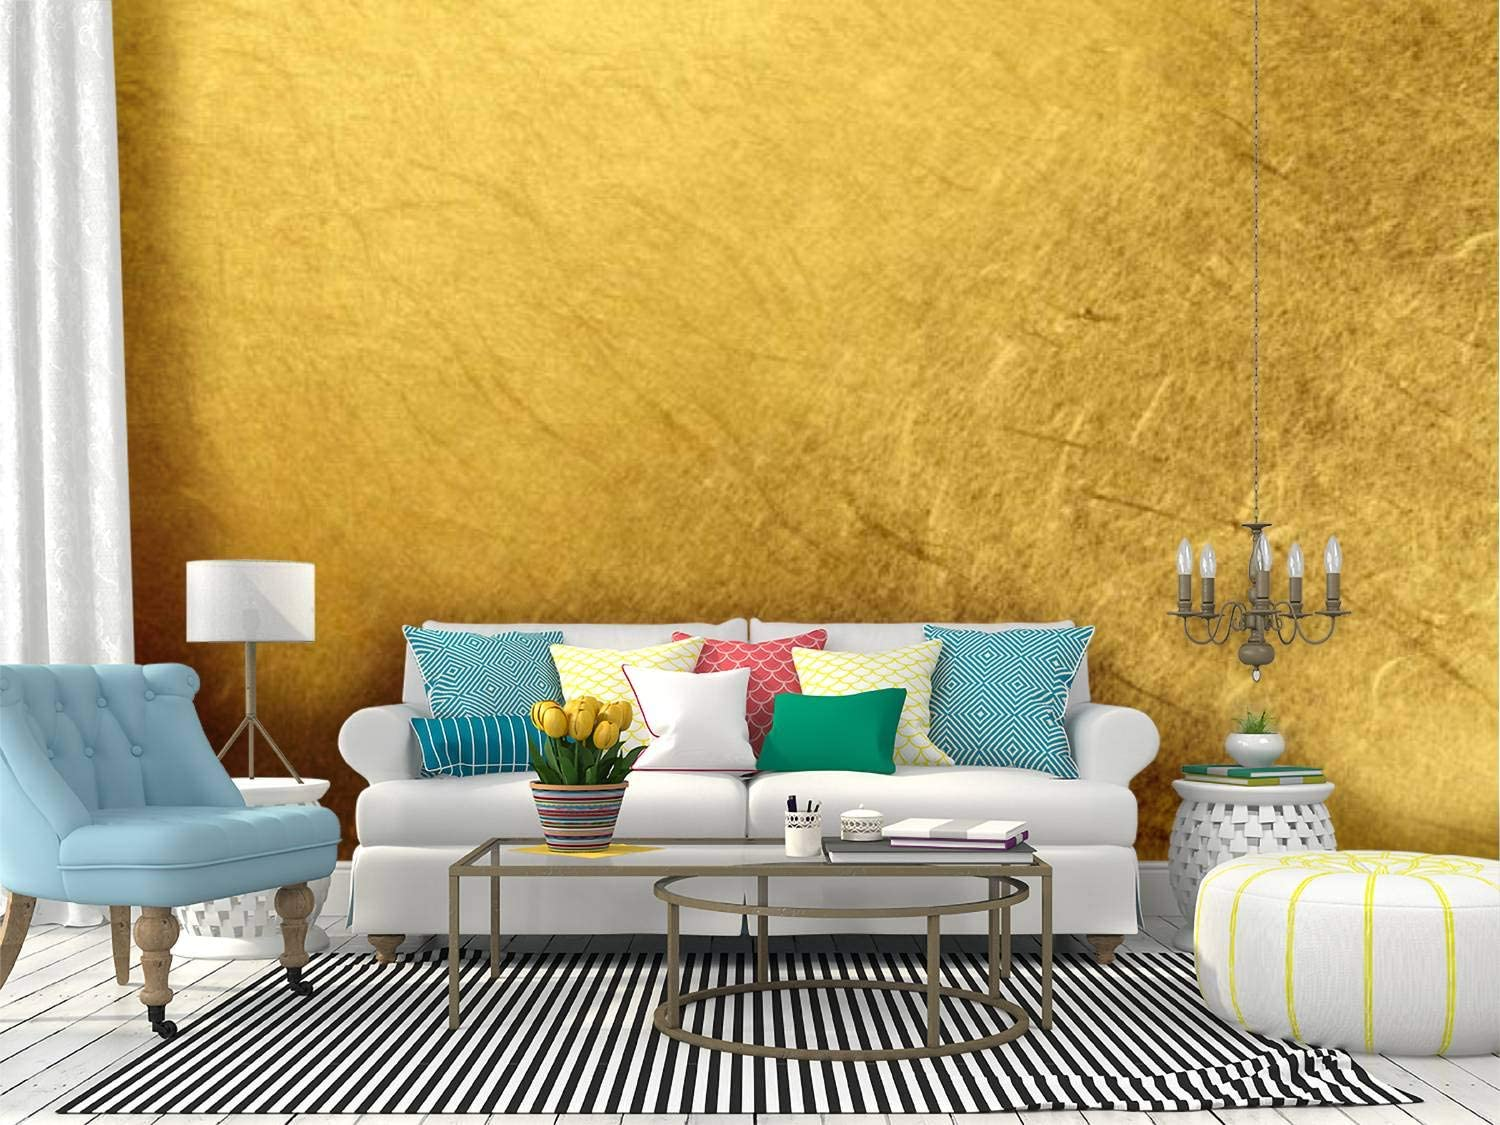 RECETHROWS Super sale period limited Wall Mural Golden Texture Peel and Mail order cheap W Stick Background